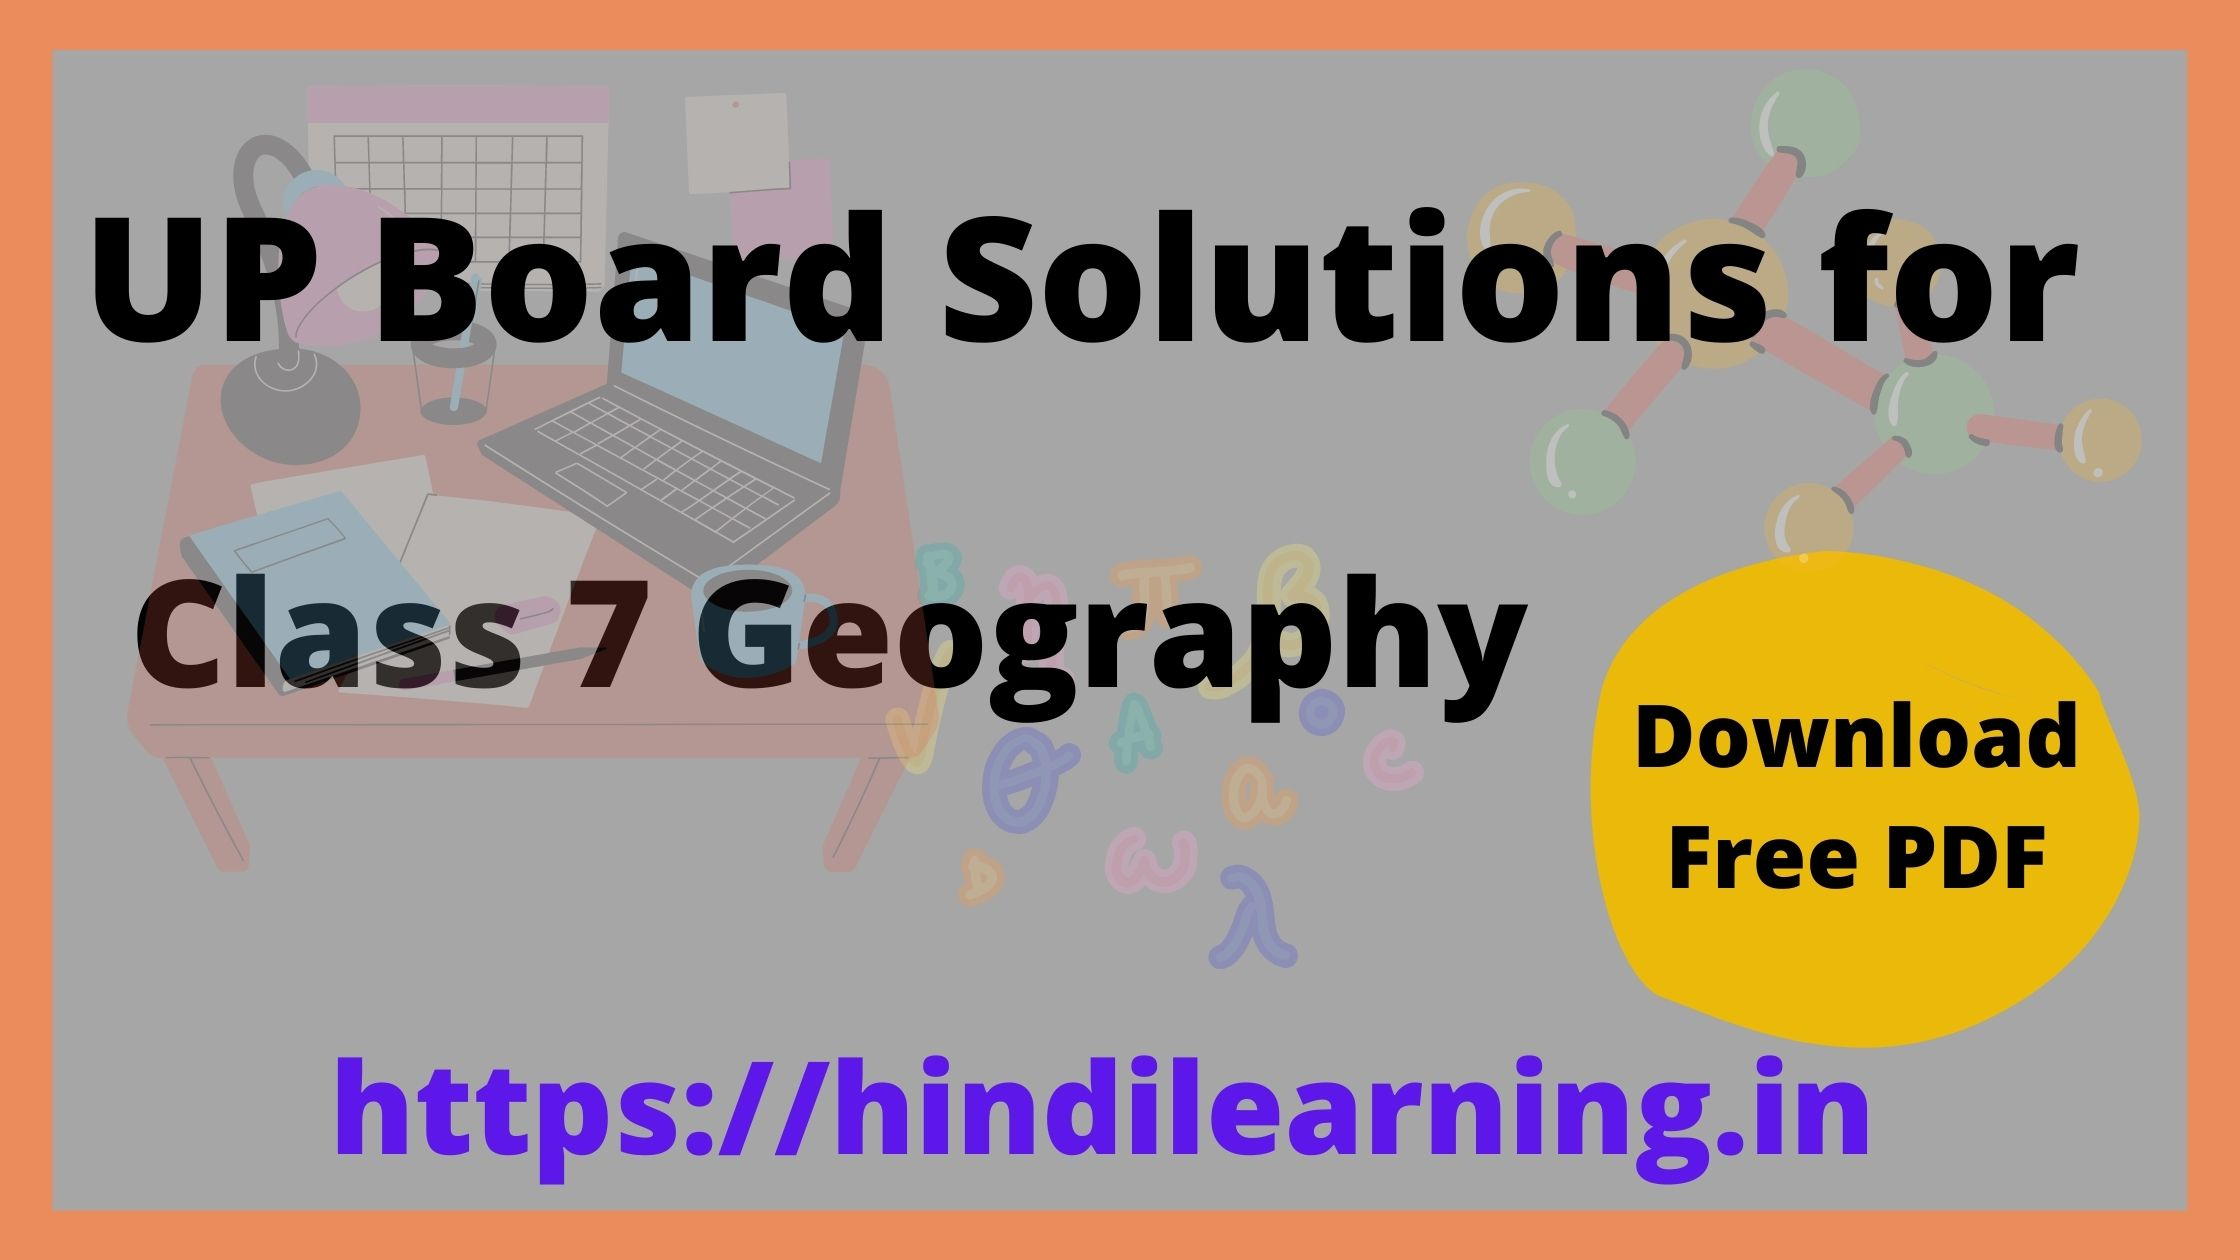 UP Board Solutions for Class 7 Geography (भूगोल)